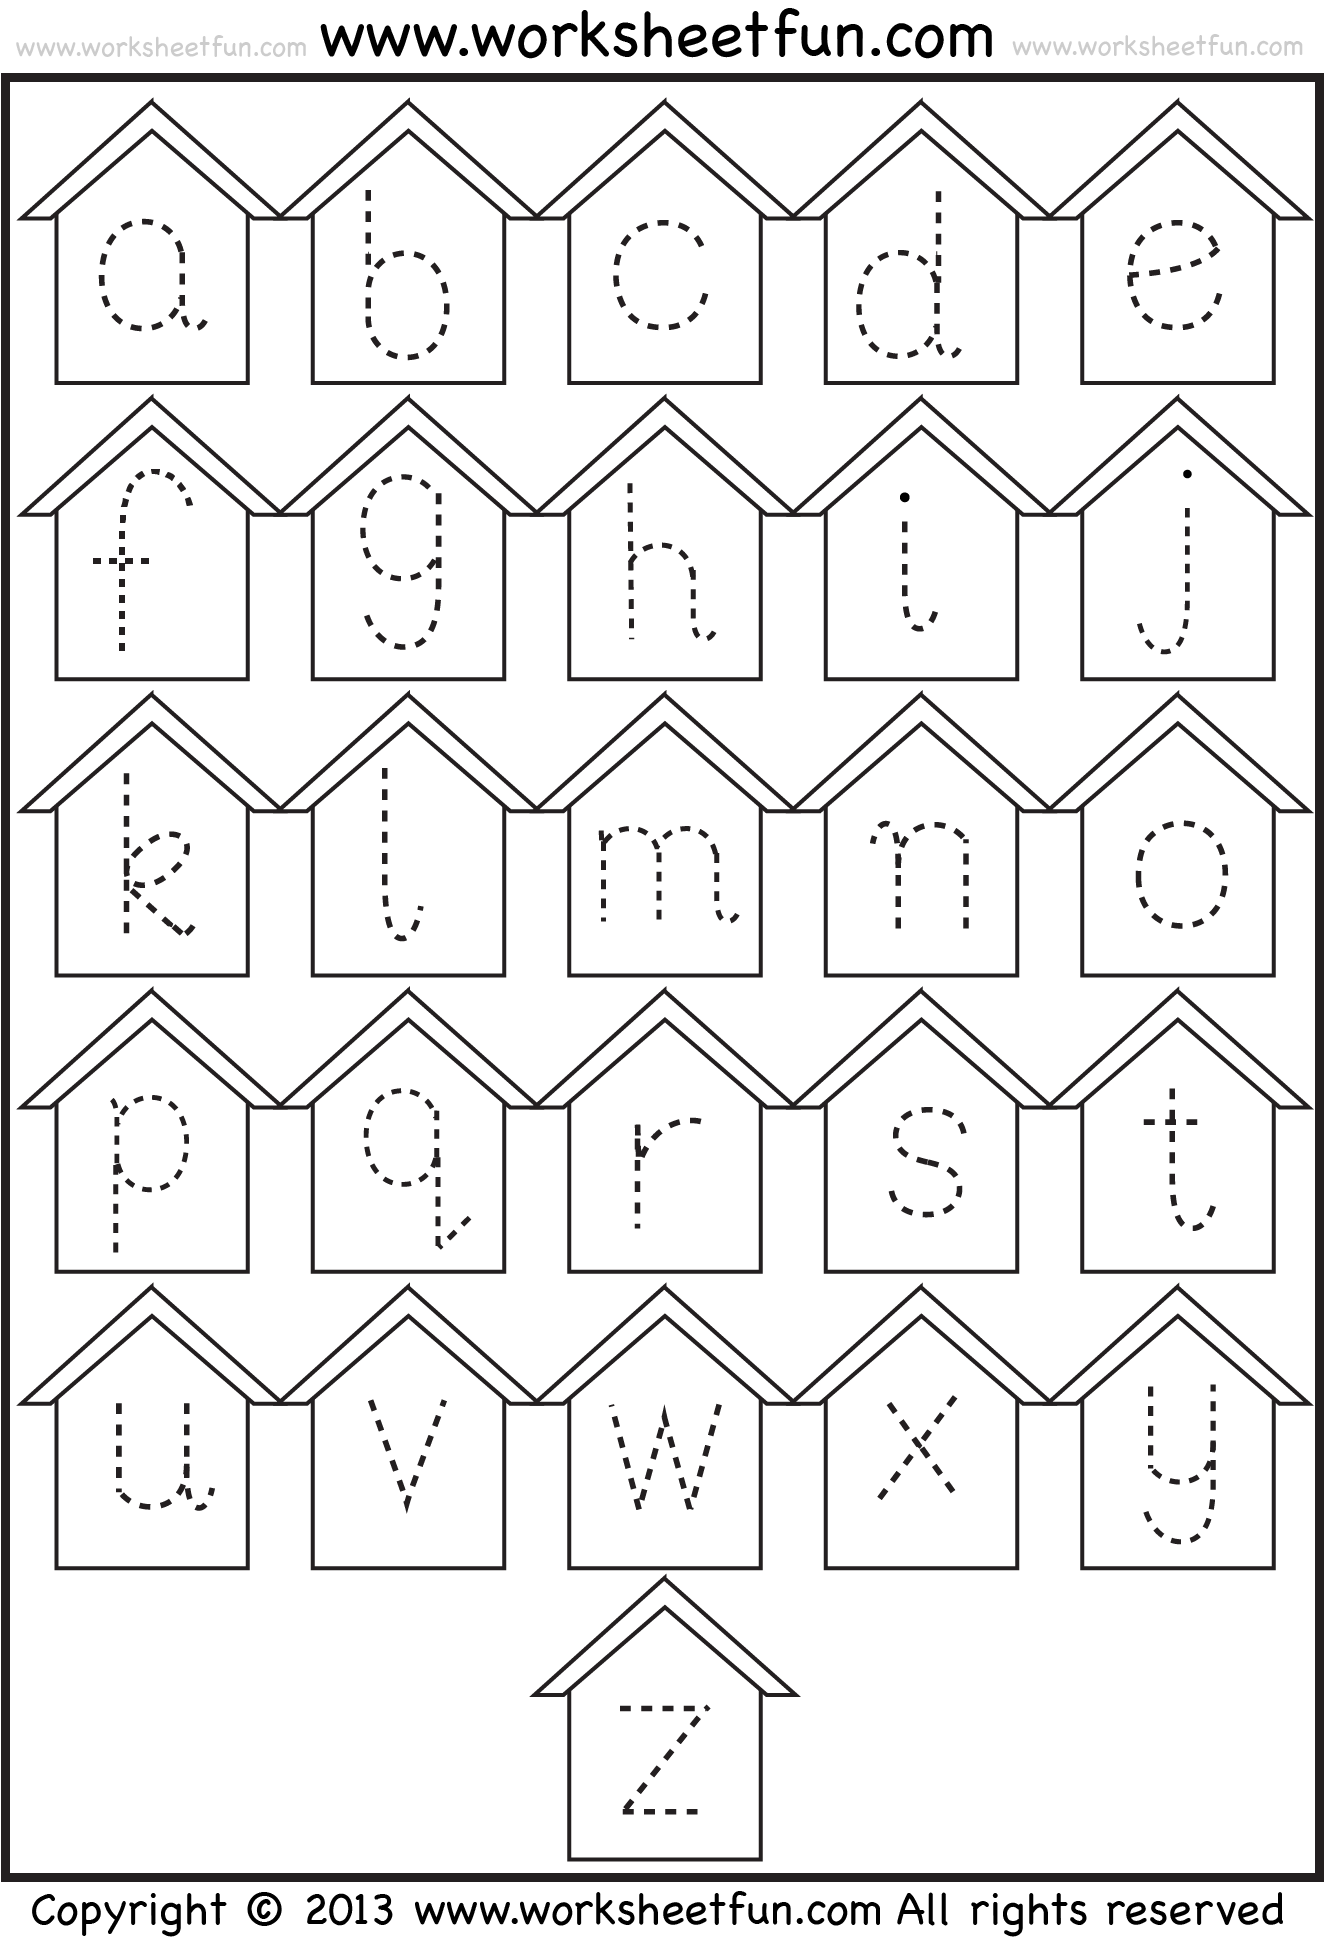 This is a picture of Stupendous Trace Letters Worksheets